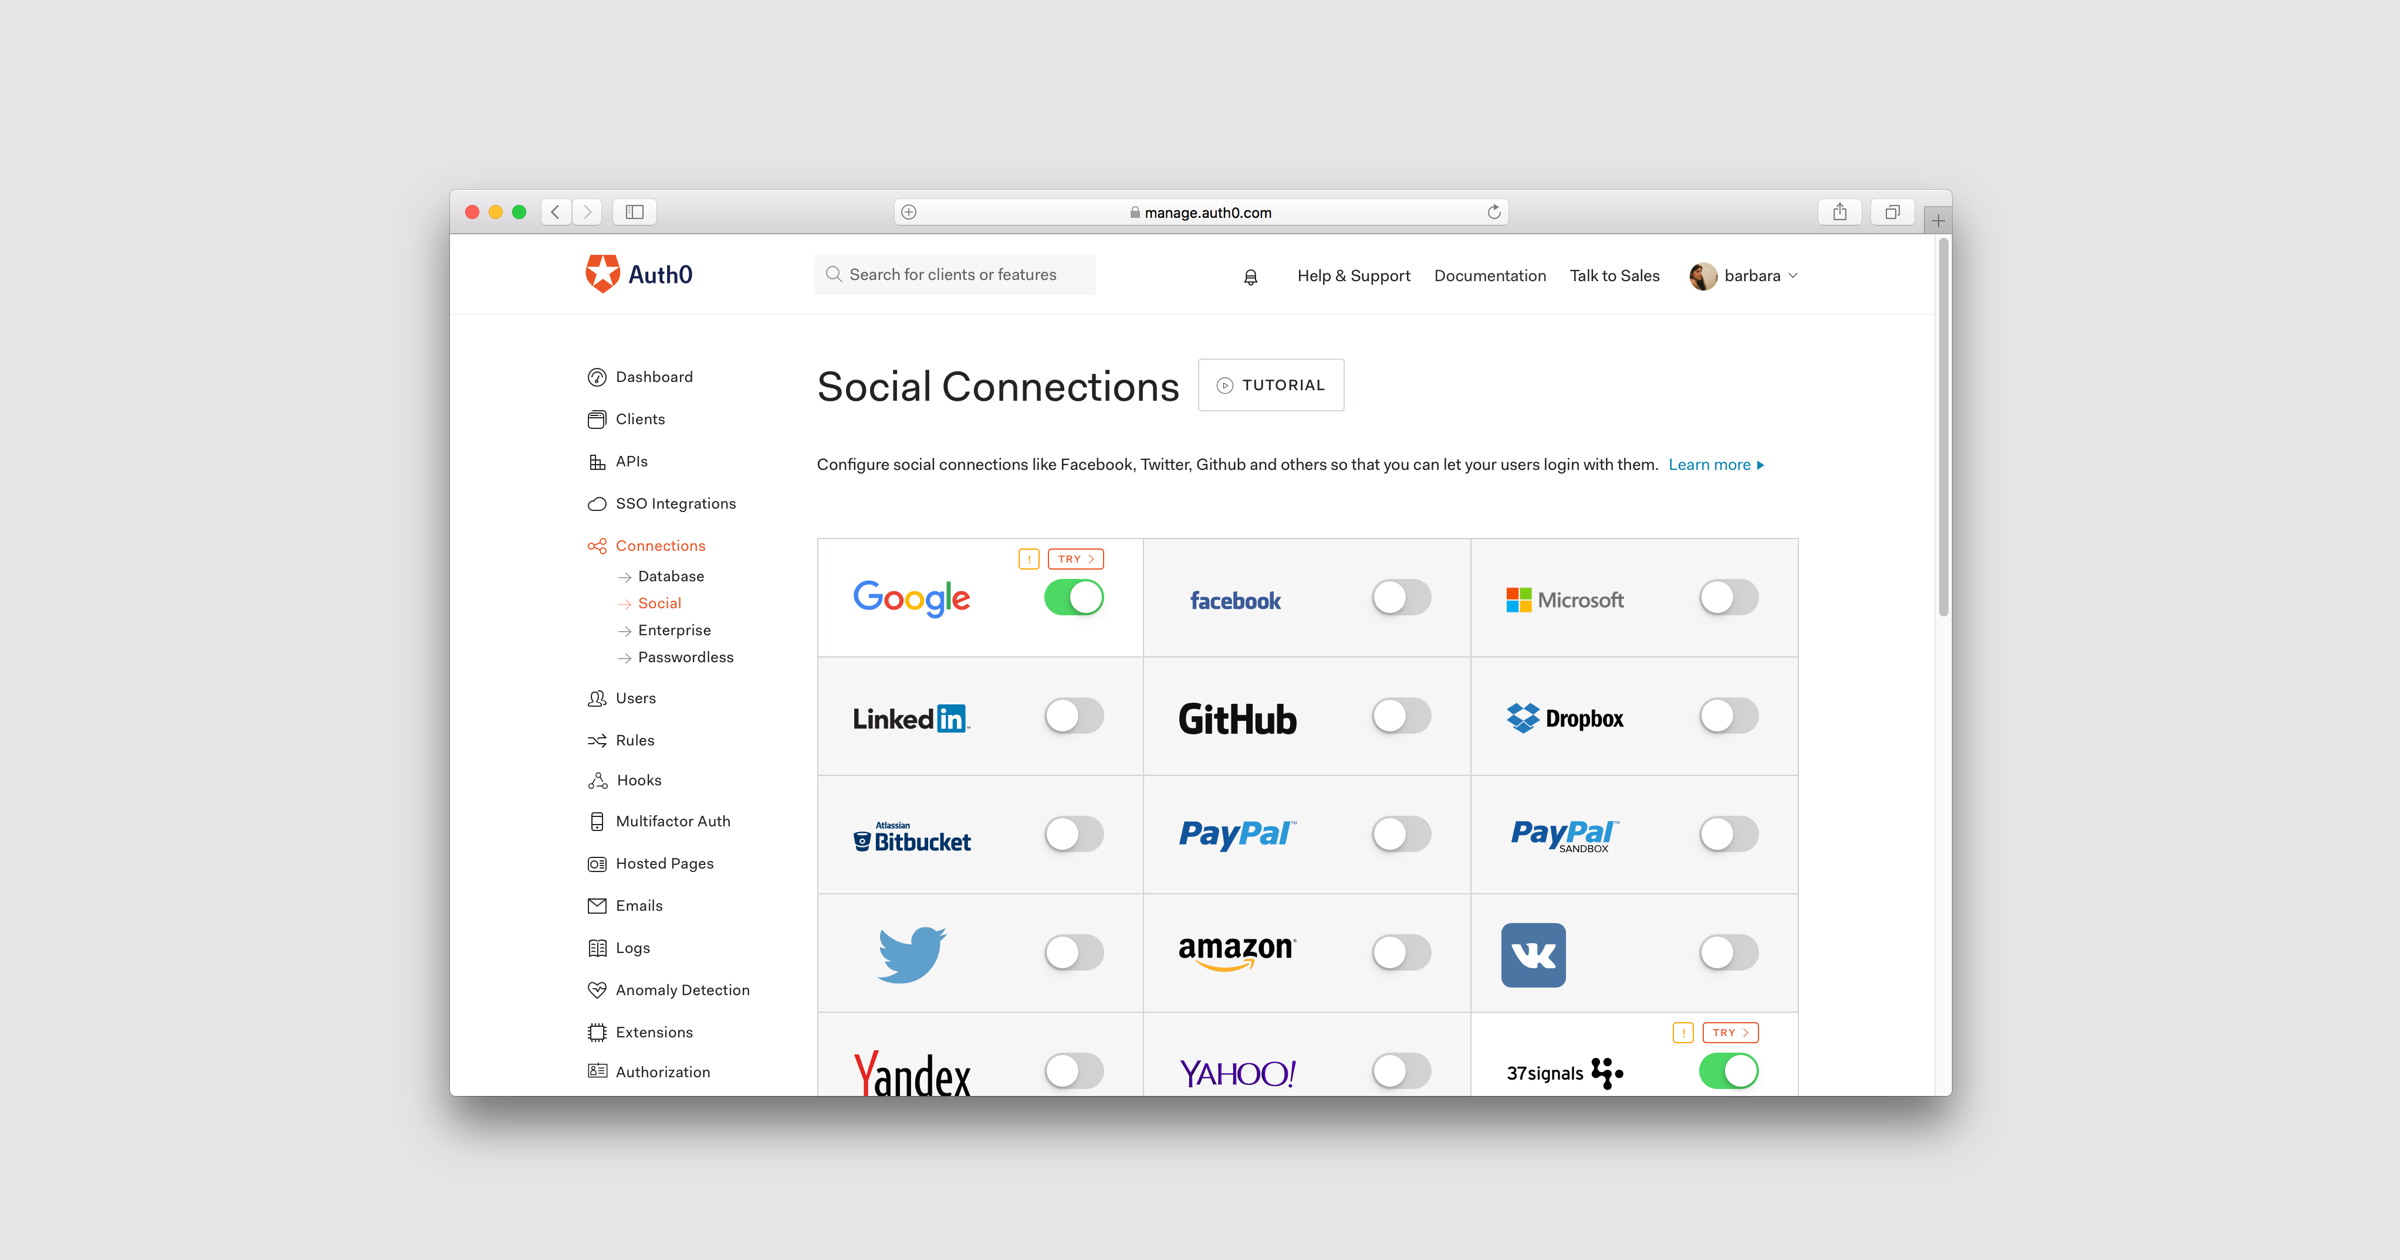 Auth0 supports over 30 social providers, including Facebook, Twitter, Google, and PayPal.